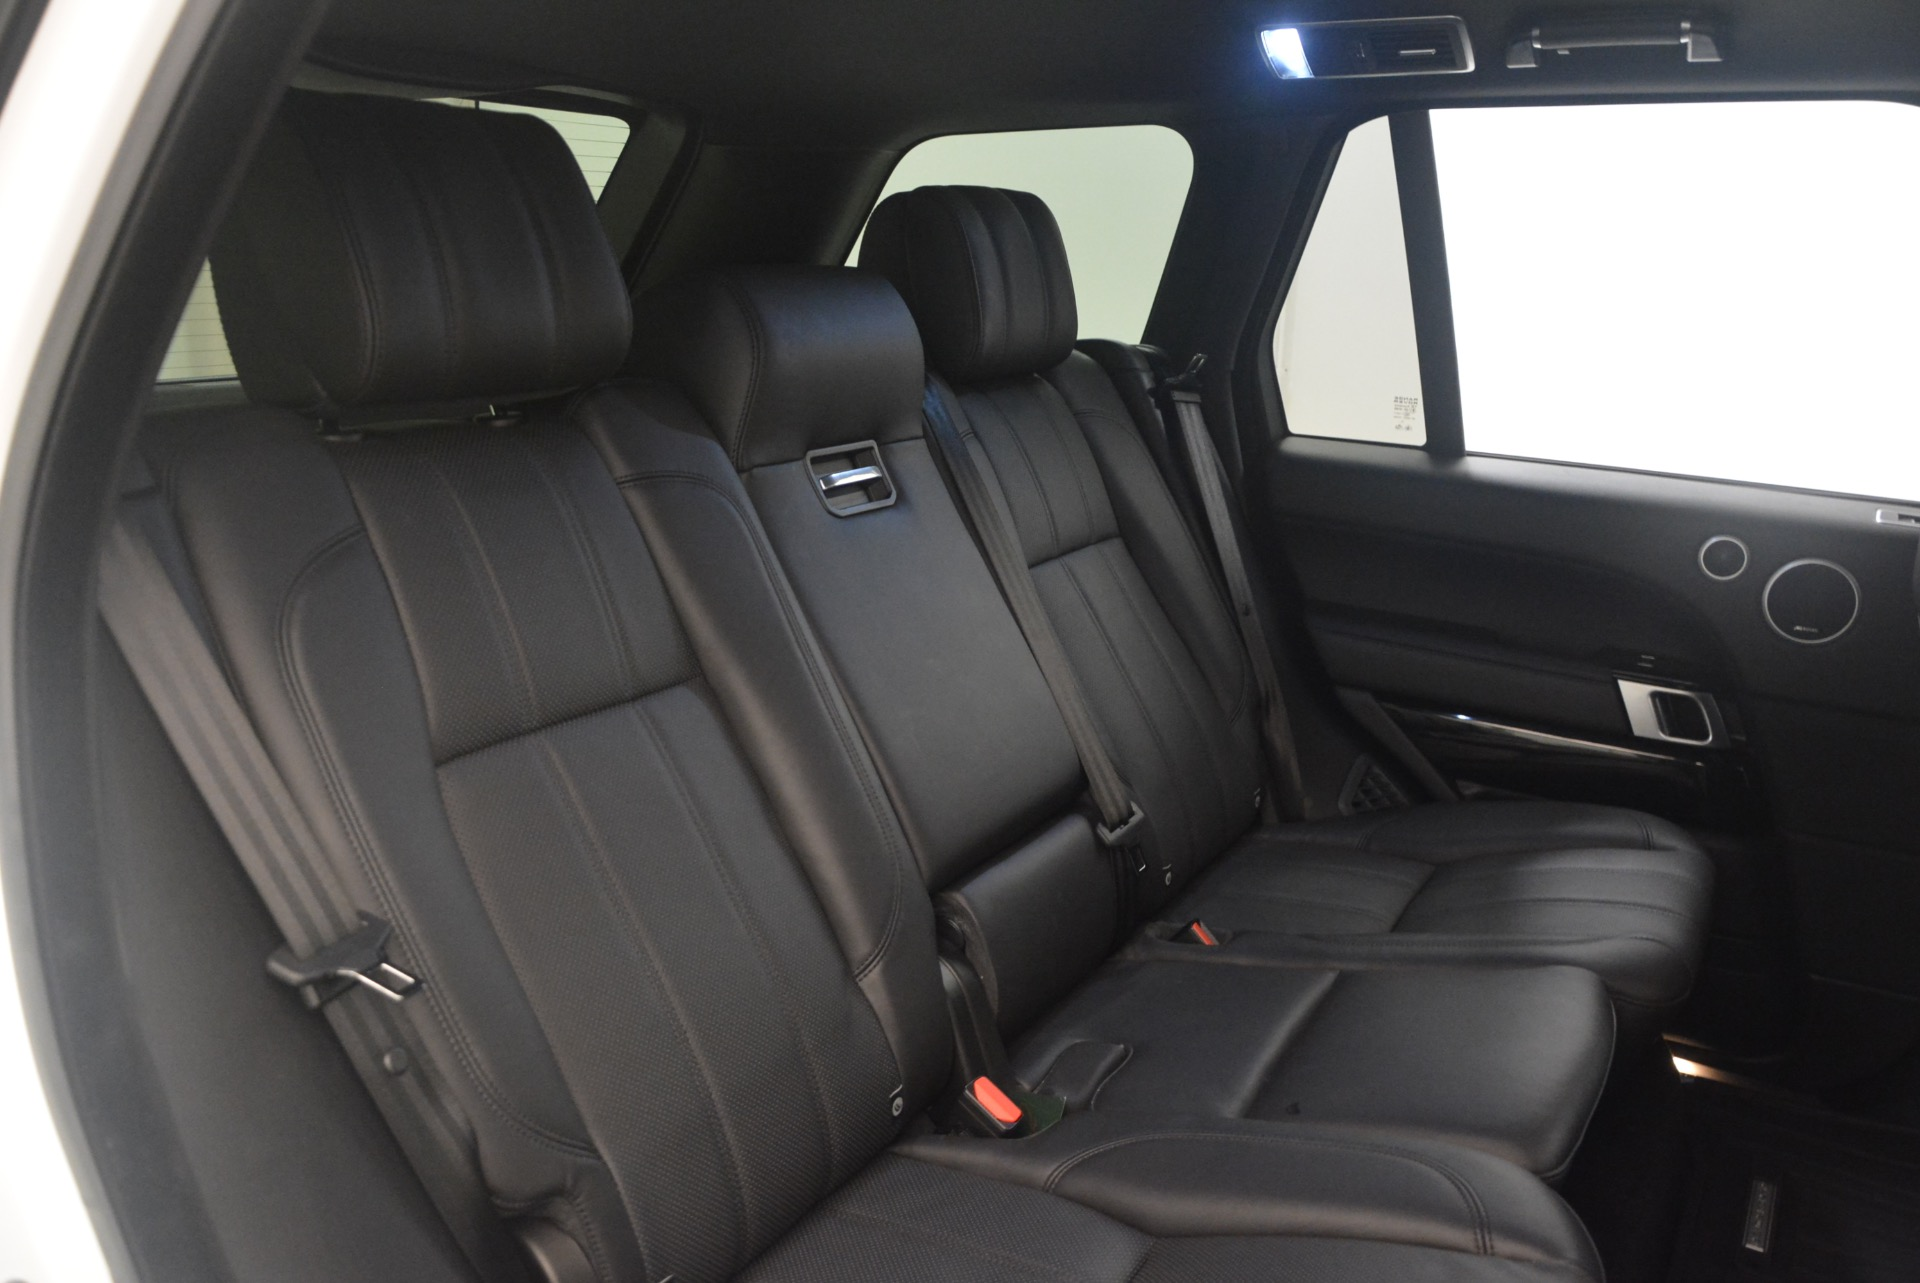 Used 2015 Land Rover Range Rover Supercharged For Sale In Greenwich, CT 1292_p36